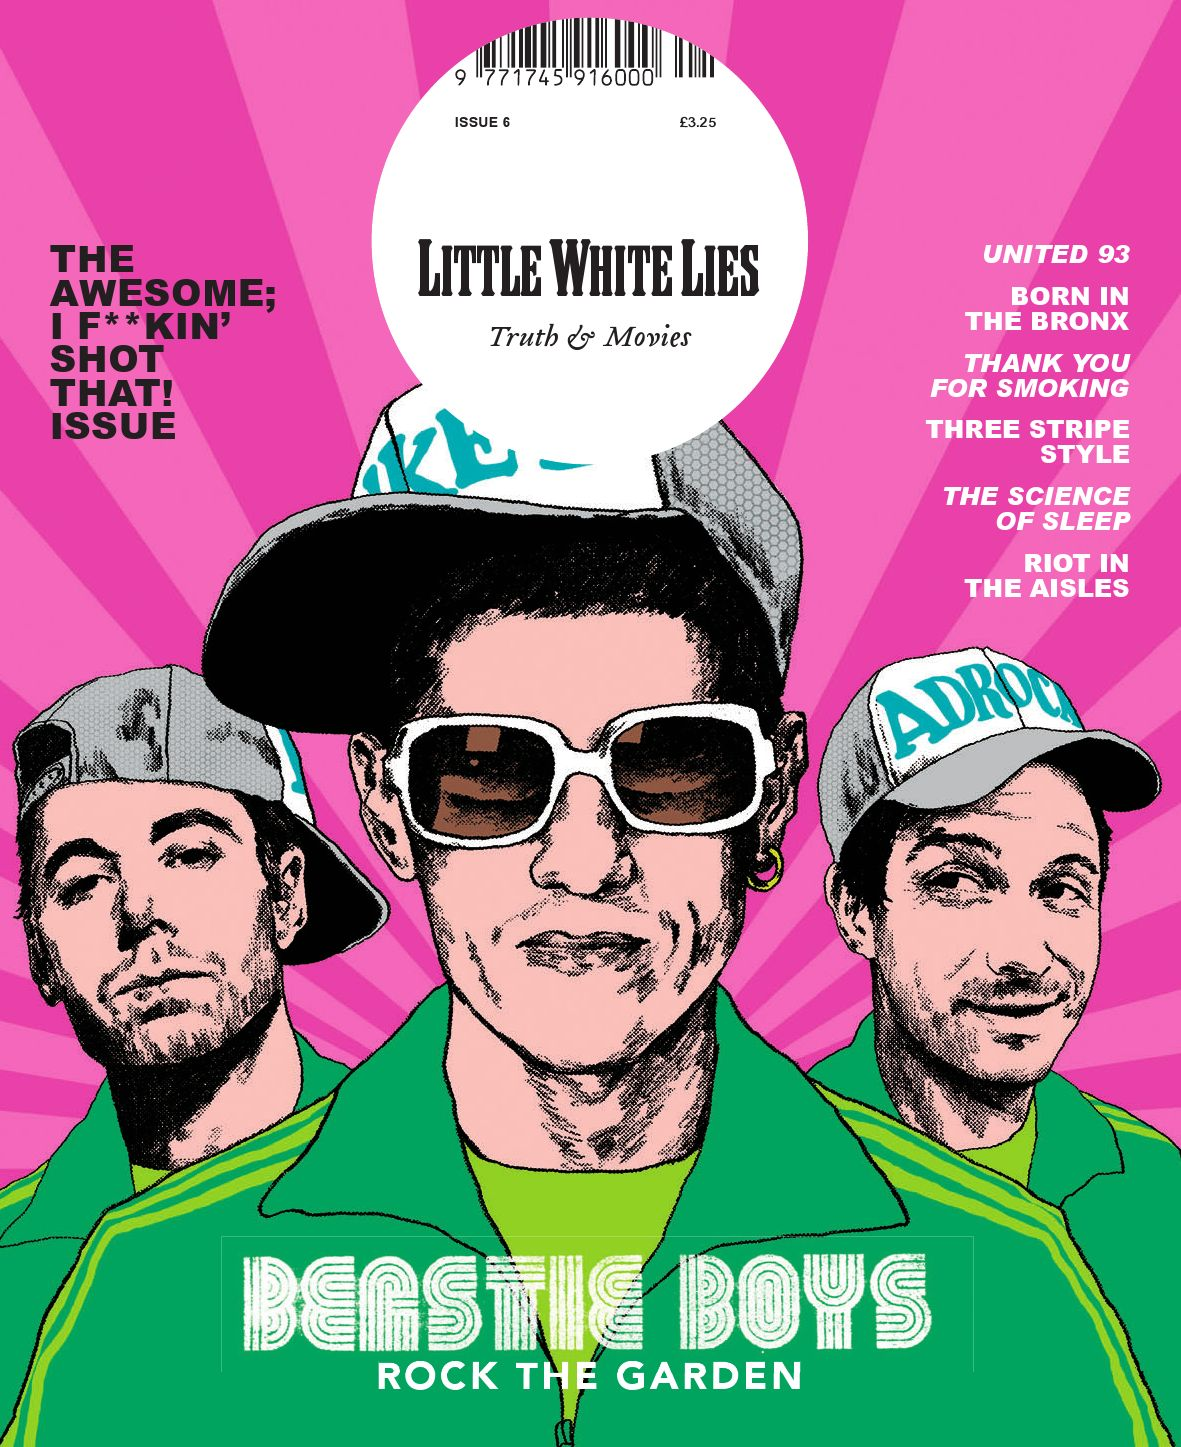 Little White Lies 06 - The Awesome I F**king Shot That Issue by The Church  of London - issuu